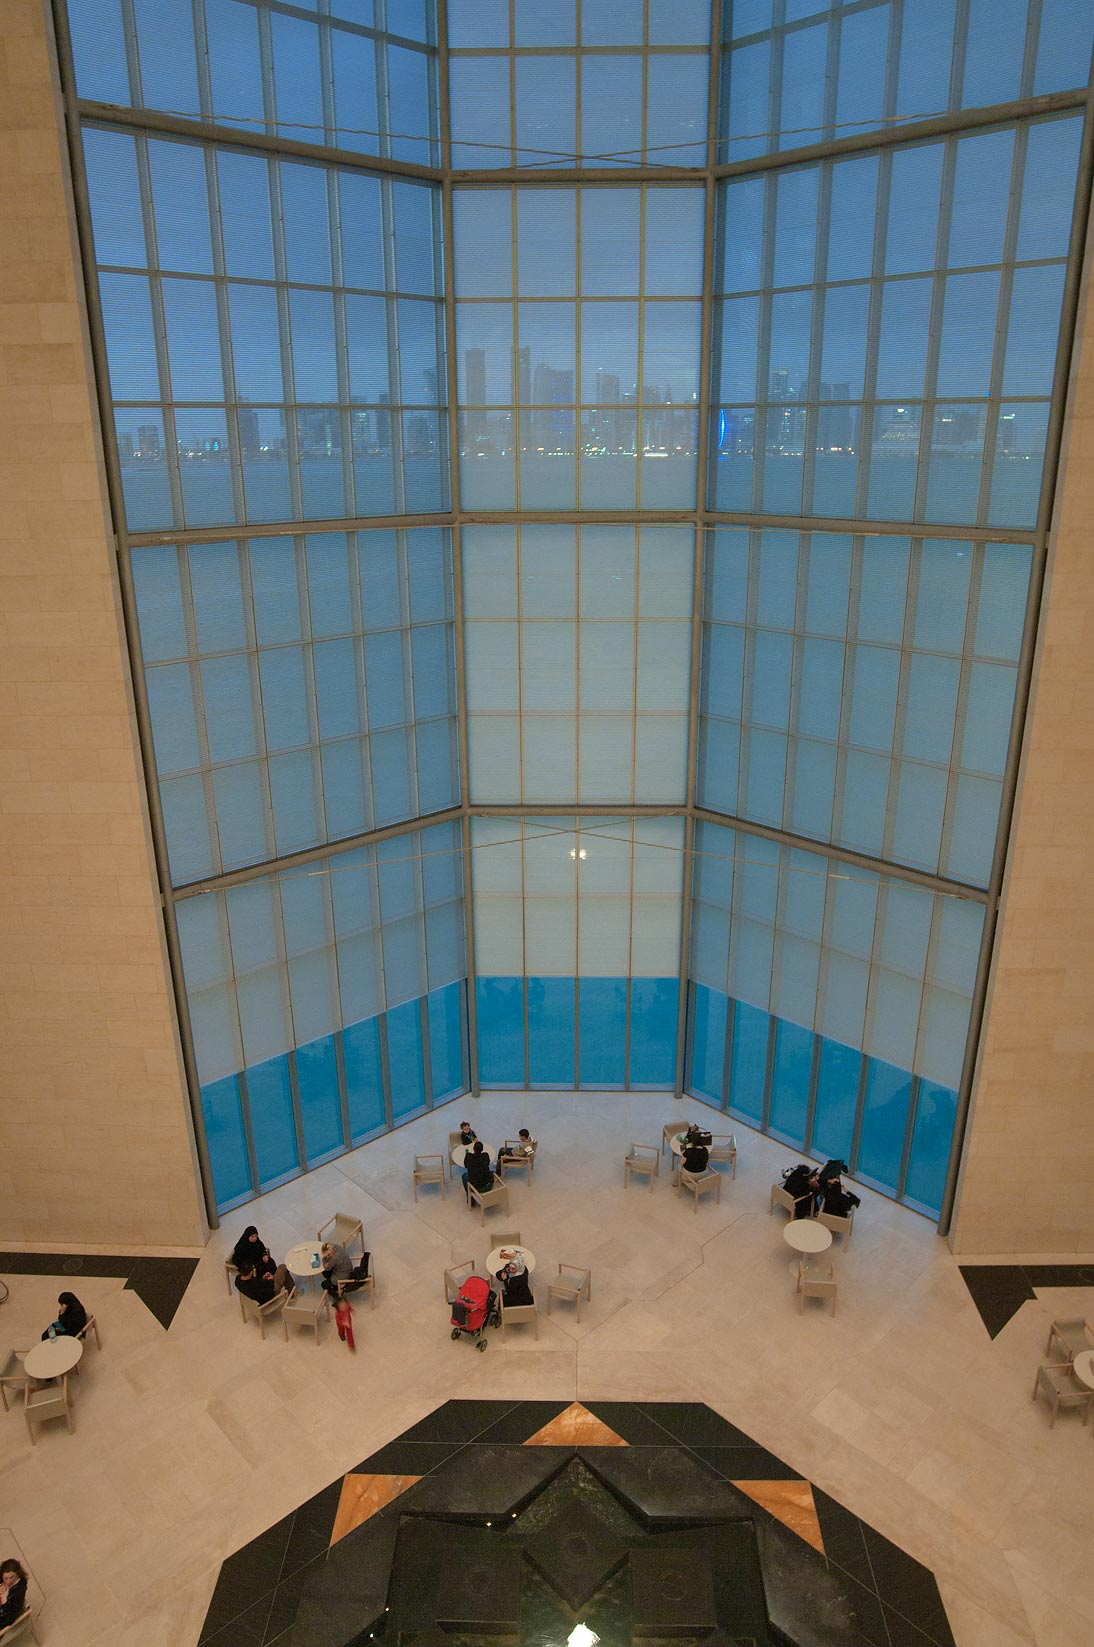 5-storey window and howz (pool) of Museum of Islamic Art. Doha, Qatar